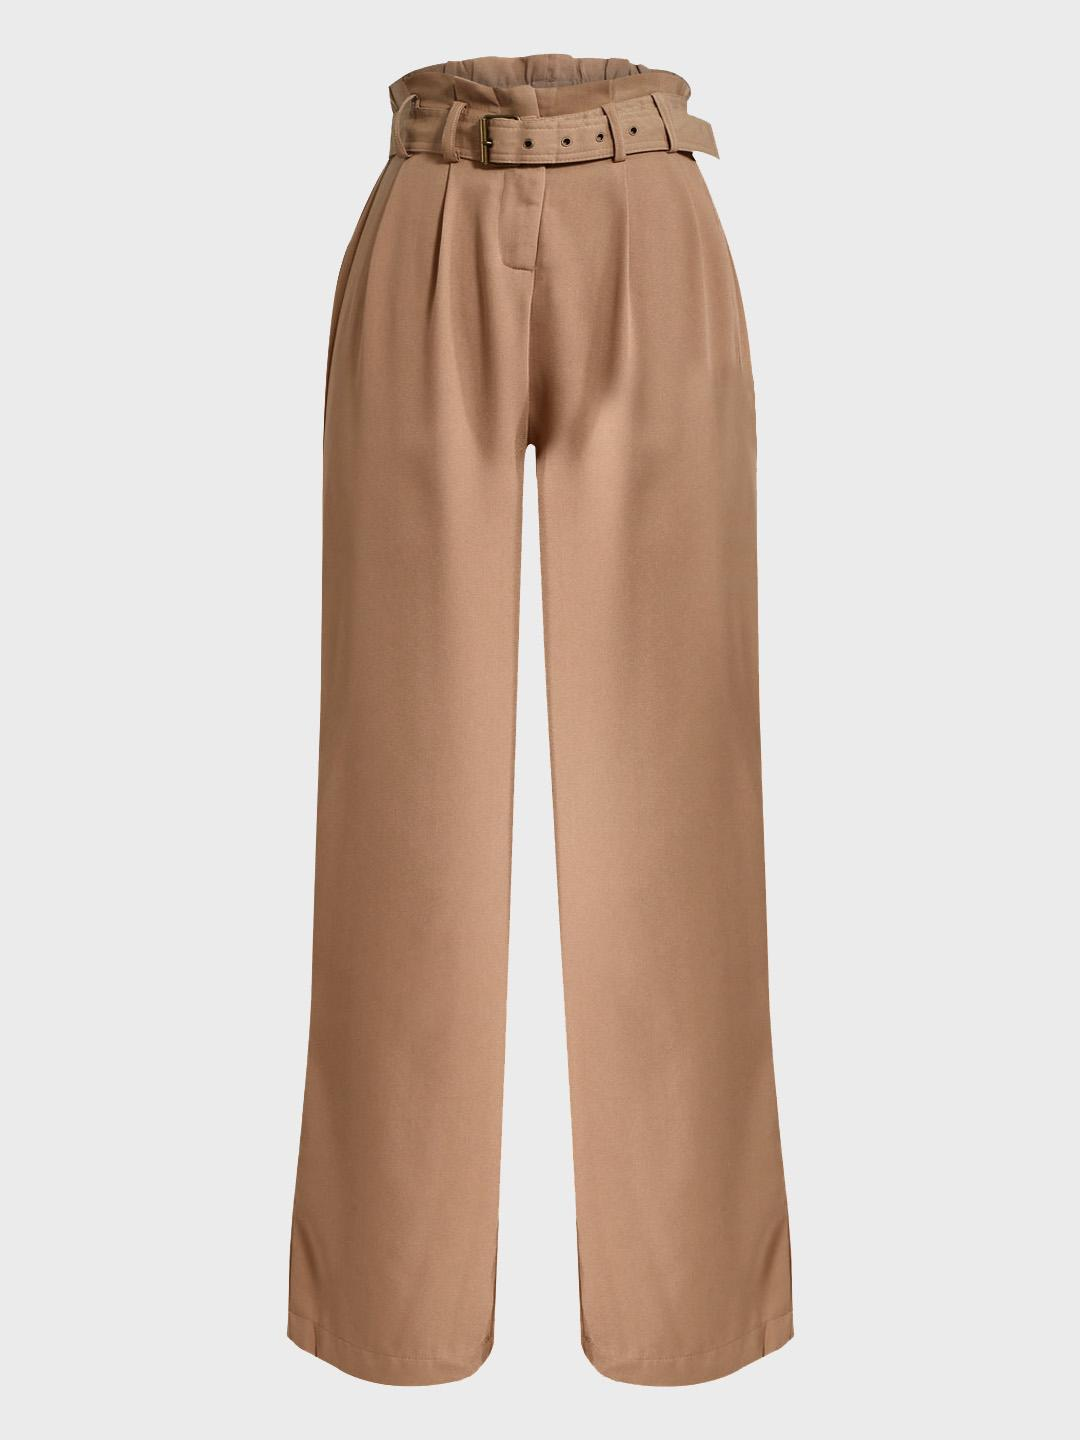 Iris Brown Paperbag Belted Waist Flared Trousers 1